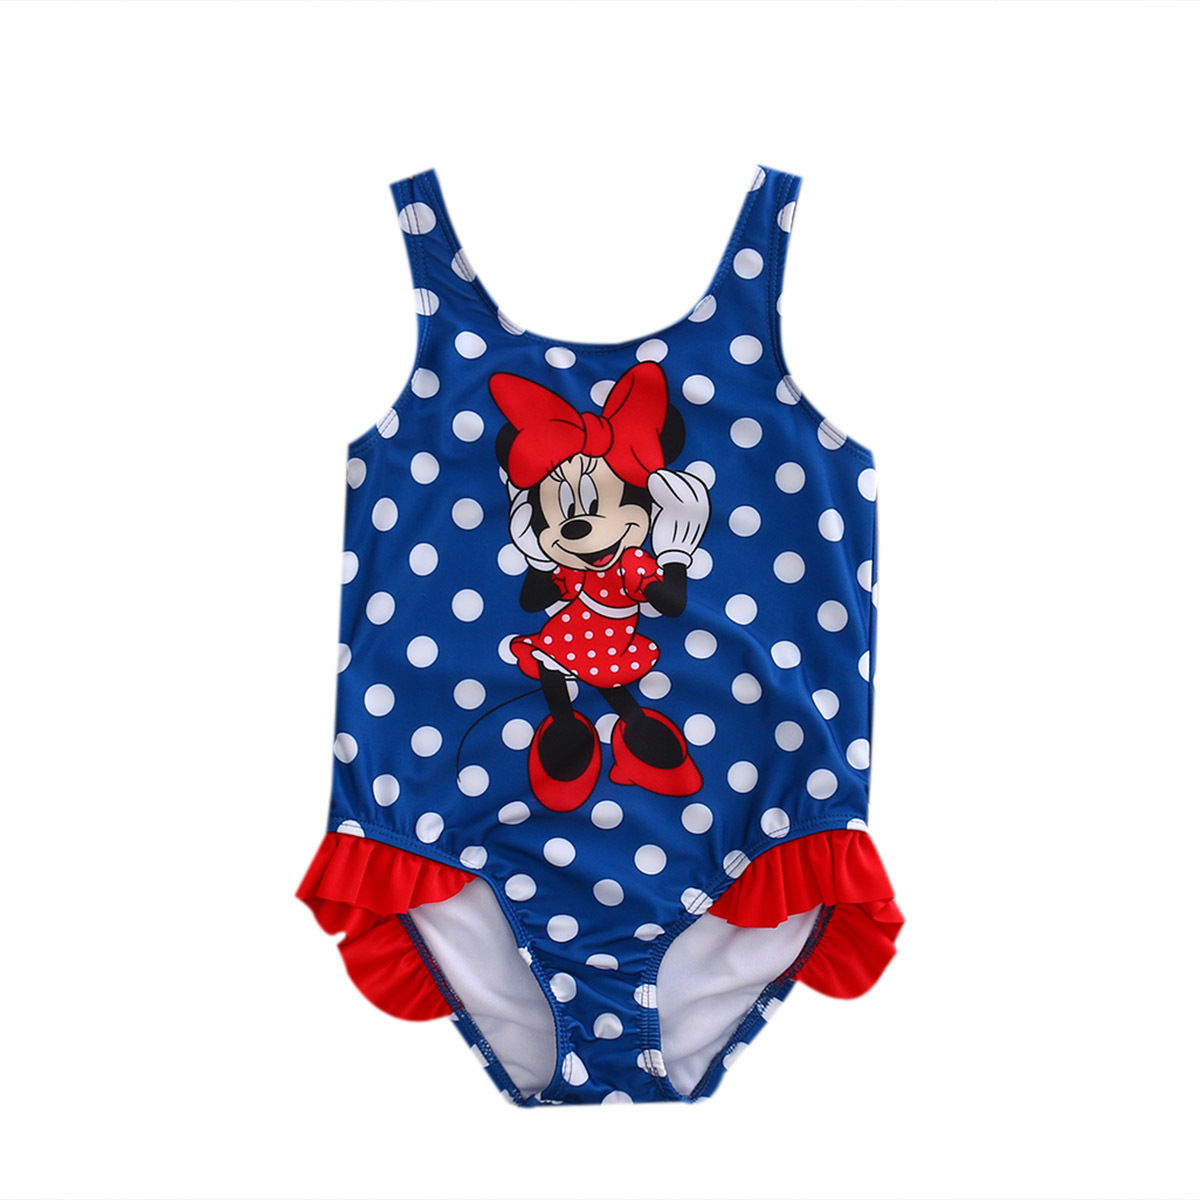 2017 Kids Costume Swimsuit Polka Dot Bathing One-Piece Suits Girls Cartoon Mouse Printed Tankini Toddler 1-5T Triangle Beachwear